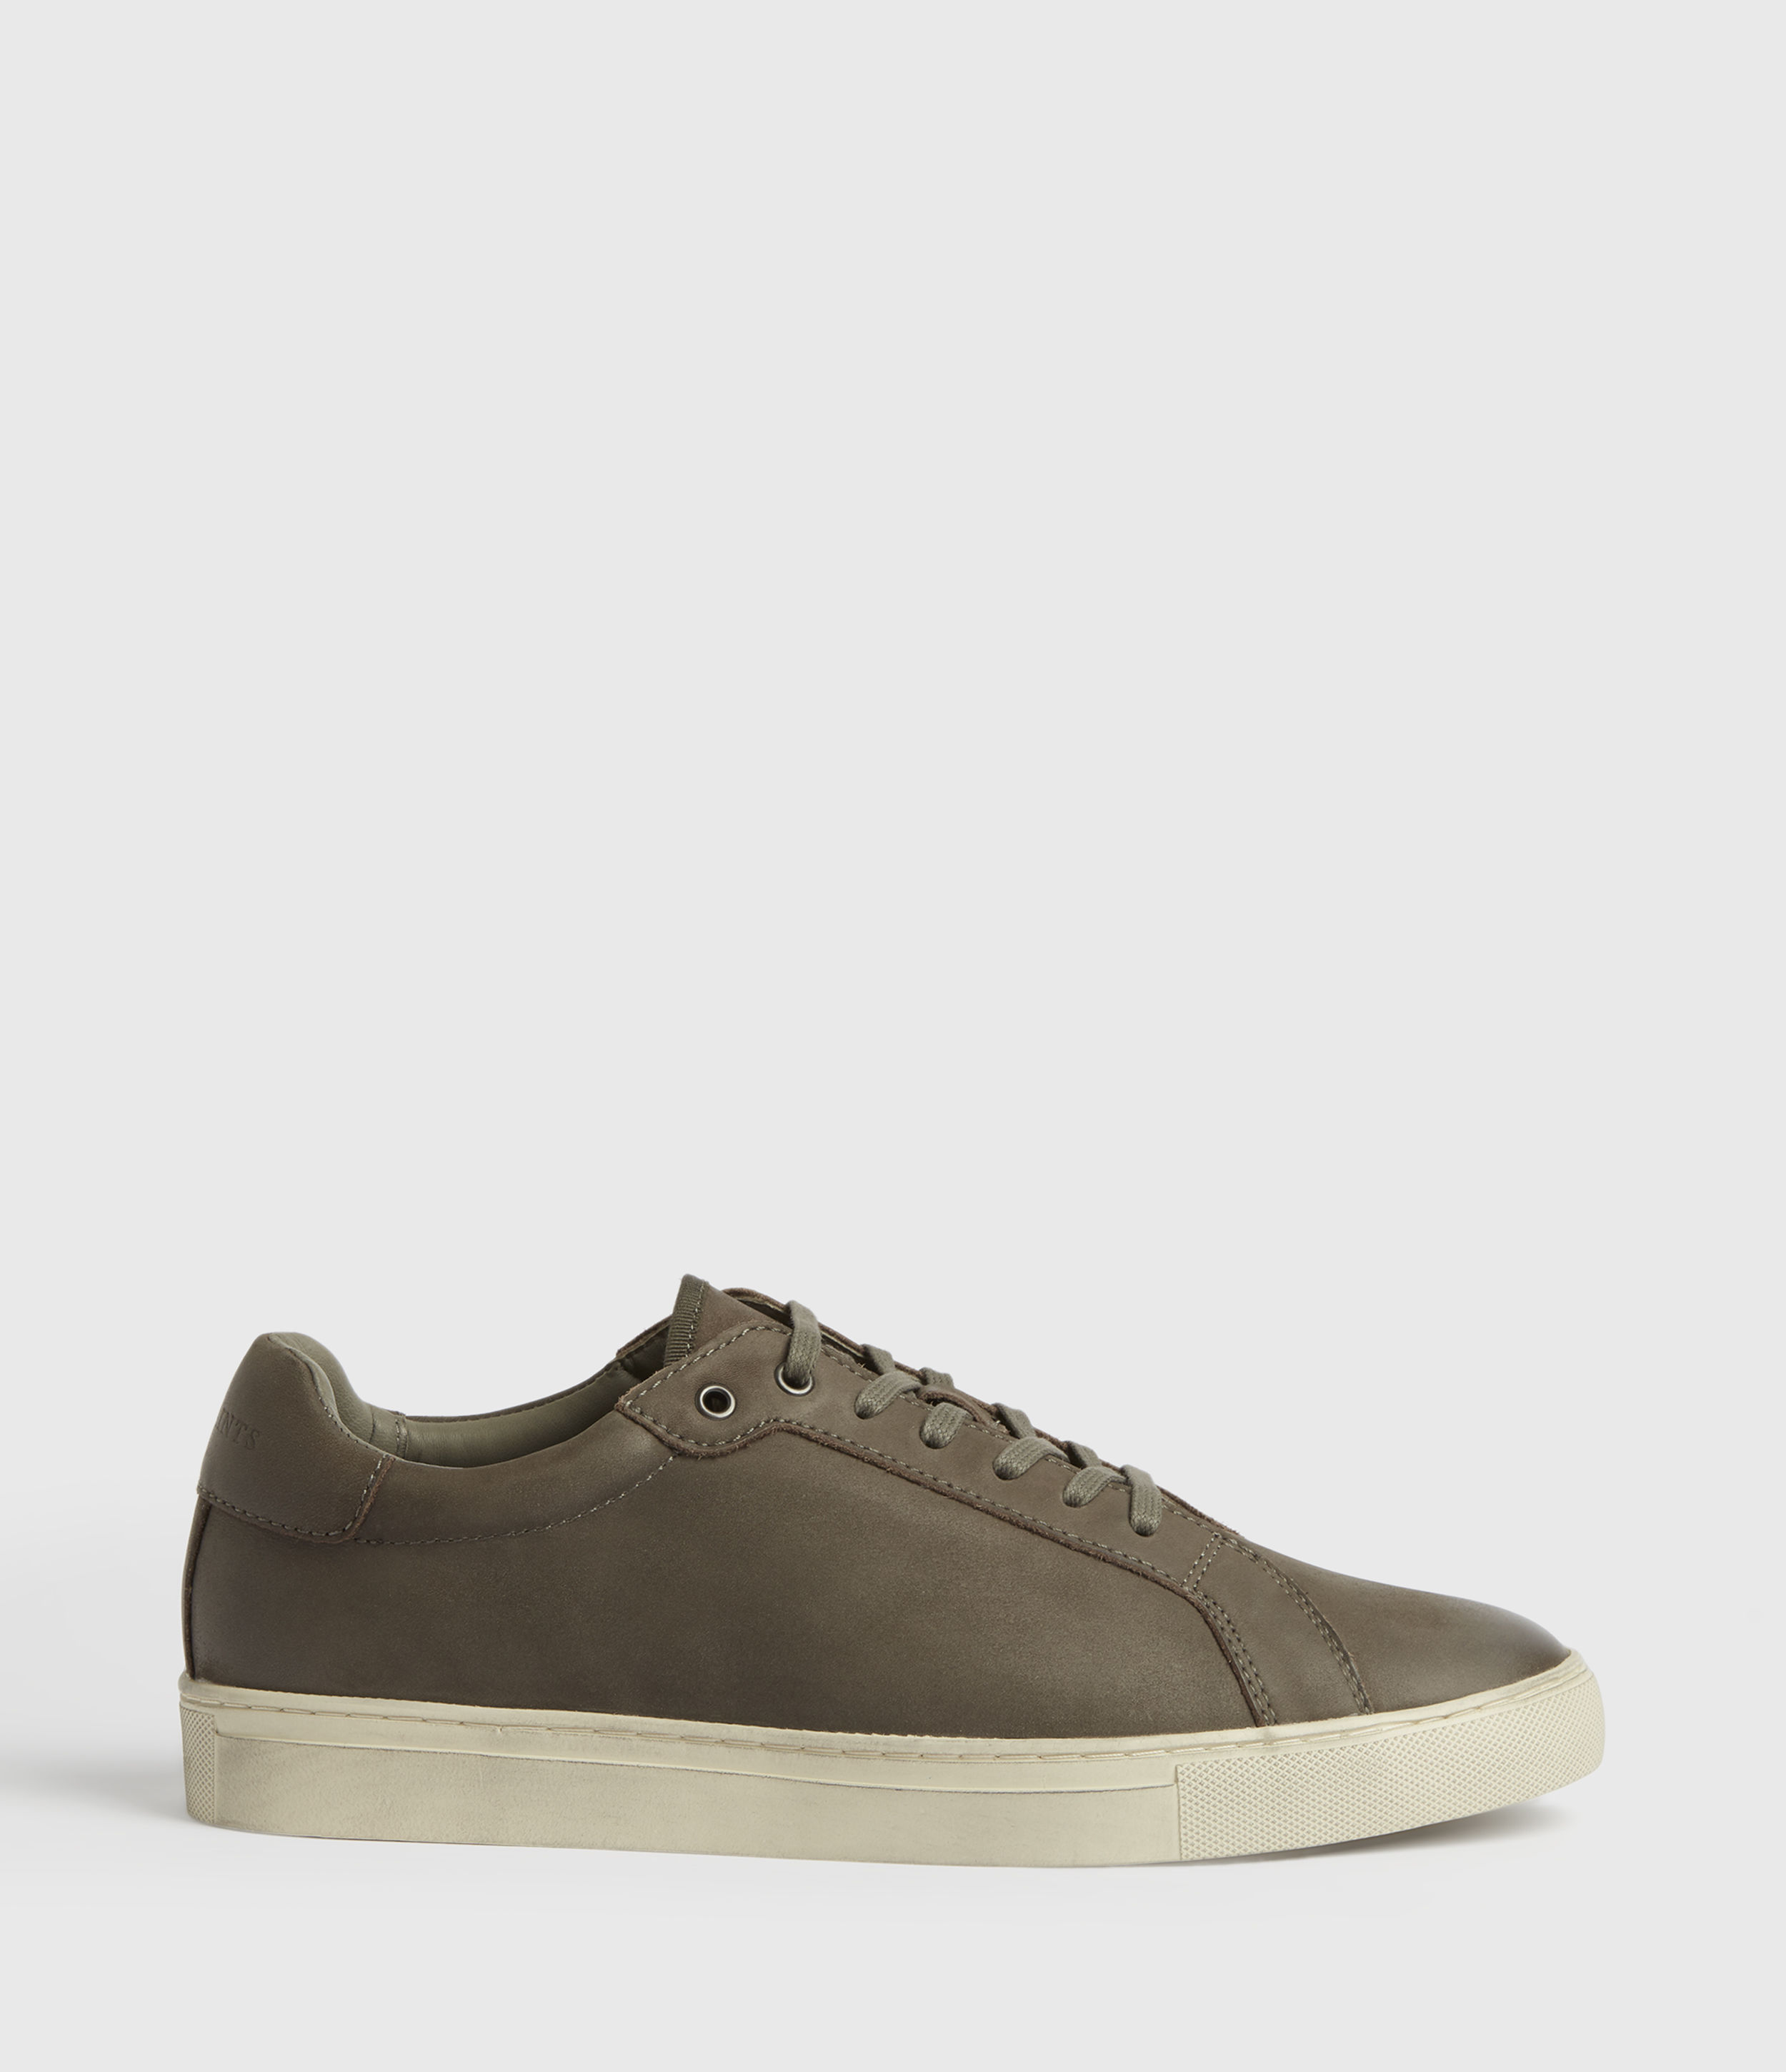 AllSaints Stow Low Top Leather Trainers